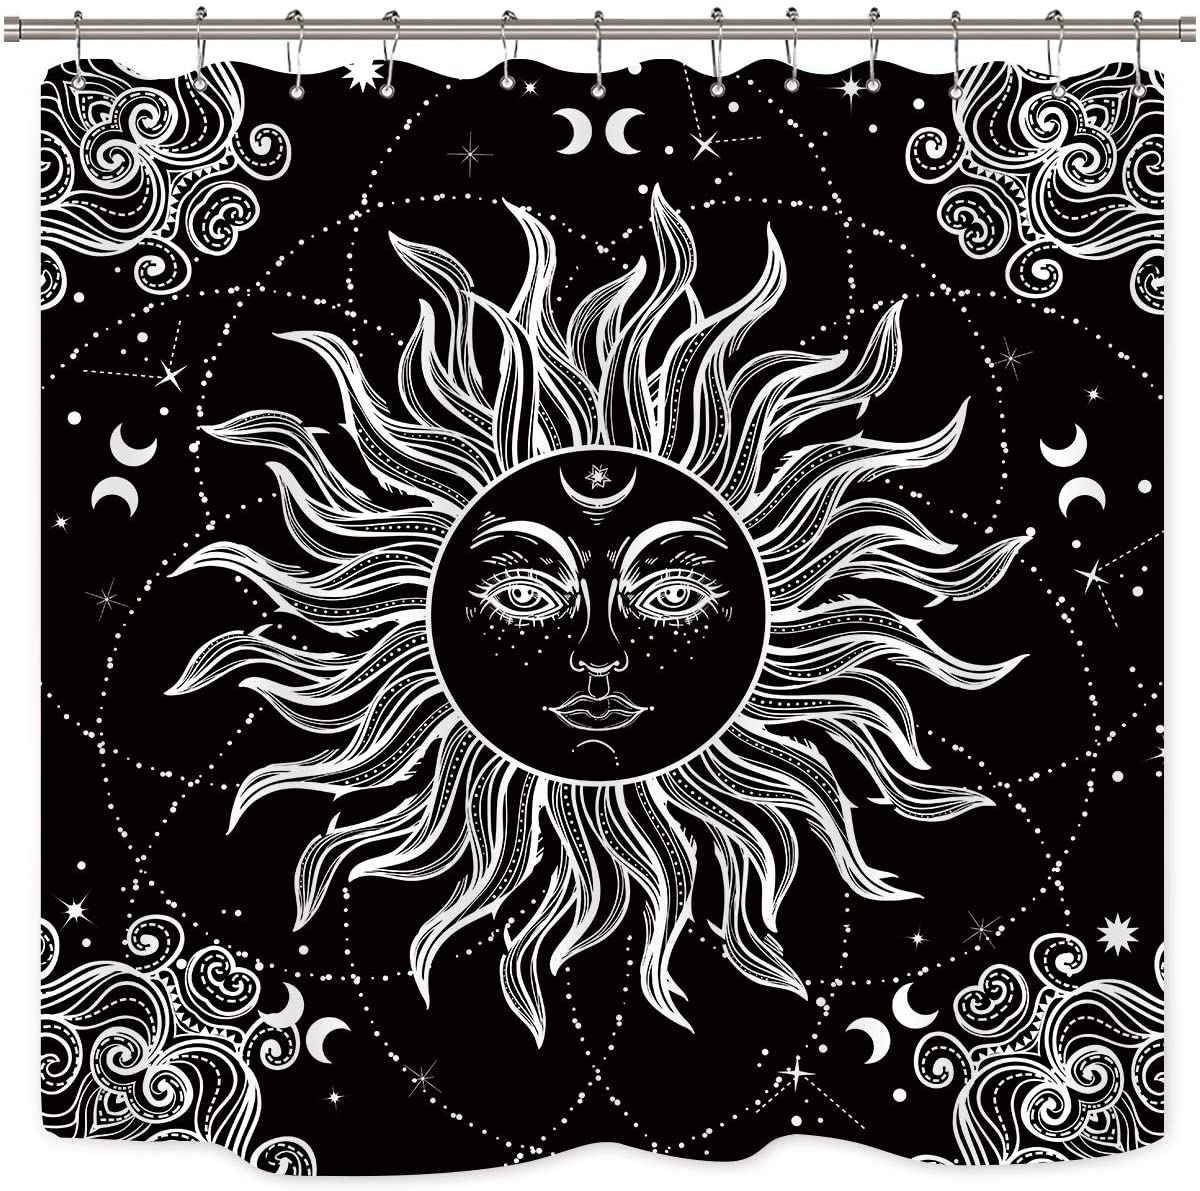 Blended Fabric Celestial Wall Hangings (set Of 3) With Latest Riyidecor Mandala Celestial Shower Curtain Sun Moon Black And White Decor Medallion Floral Fabric Set Polyester Waterproof 72x72 Inch 12 Pack Plastic (View 14 of 20)